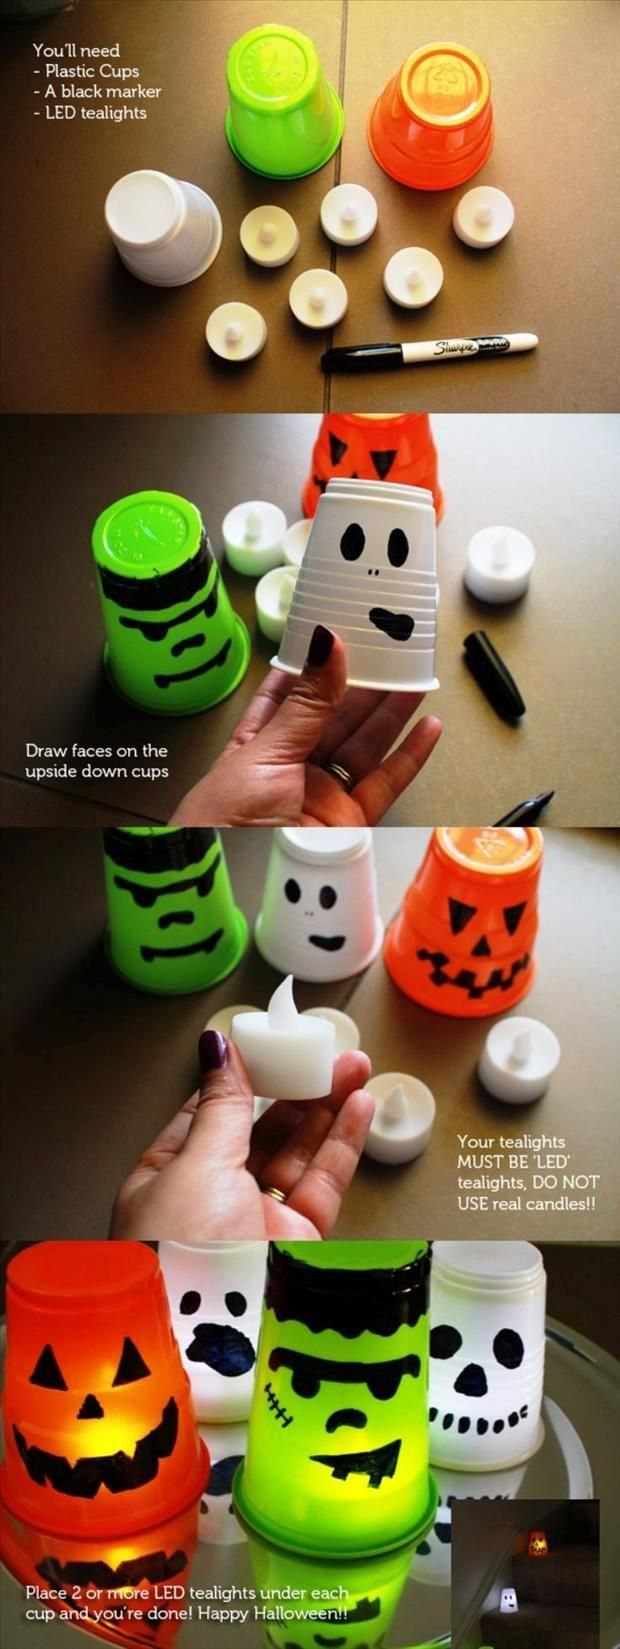 80 best Halloween images on Pinterest Halloween decorations, Male